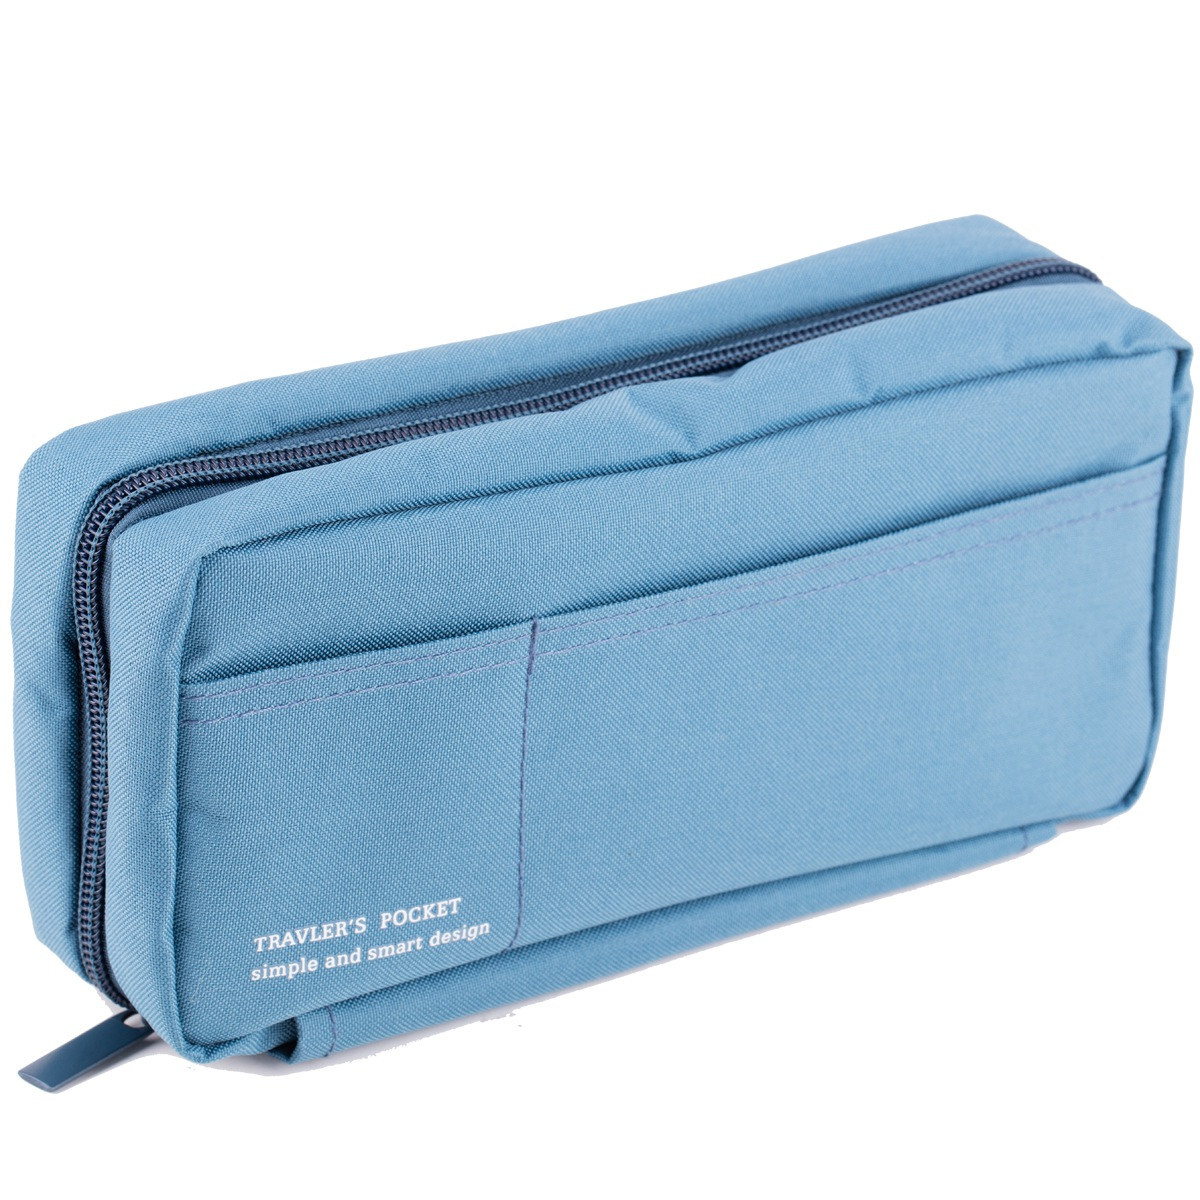 Durable Large Capacity Canvas Pen Pencil Bag Multi-function Retro Pencil Case for Boys and Girls School Supplies Stationery emax rs2205 rs2205s 2300kv 2600kv cw ccw brushless motor 2pcs cw and 2pcs ccw motor